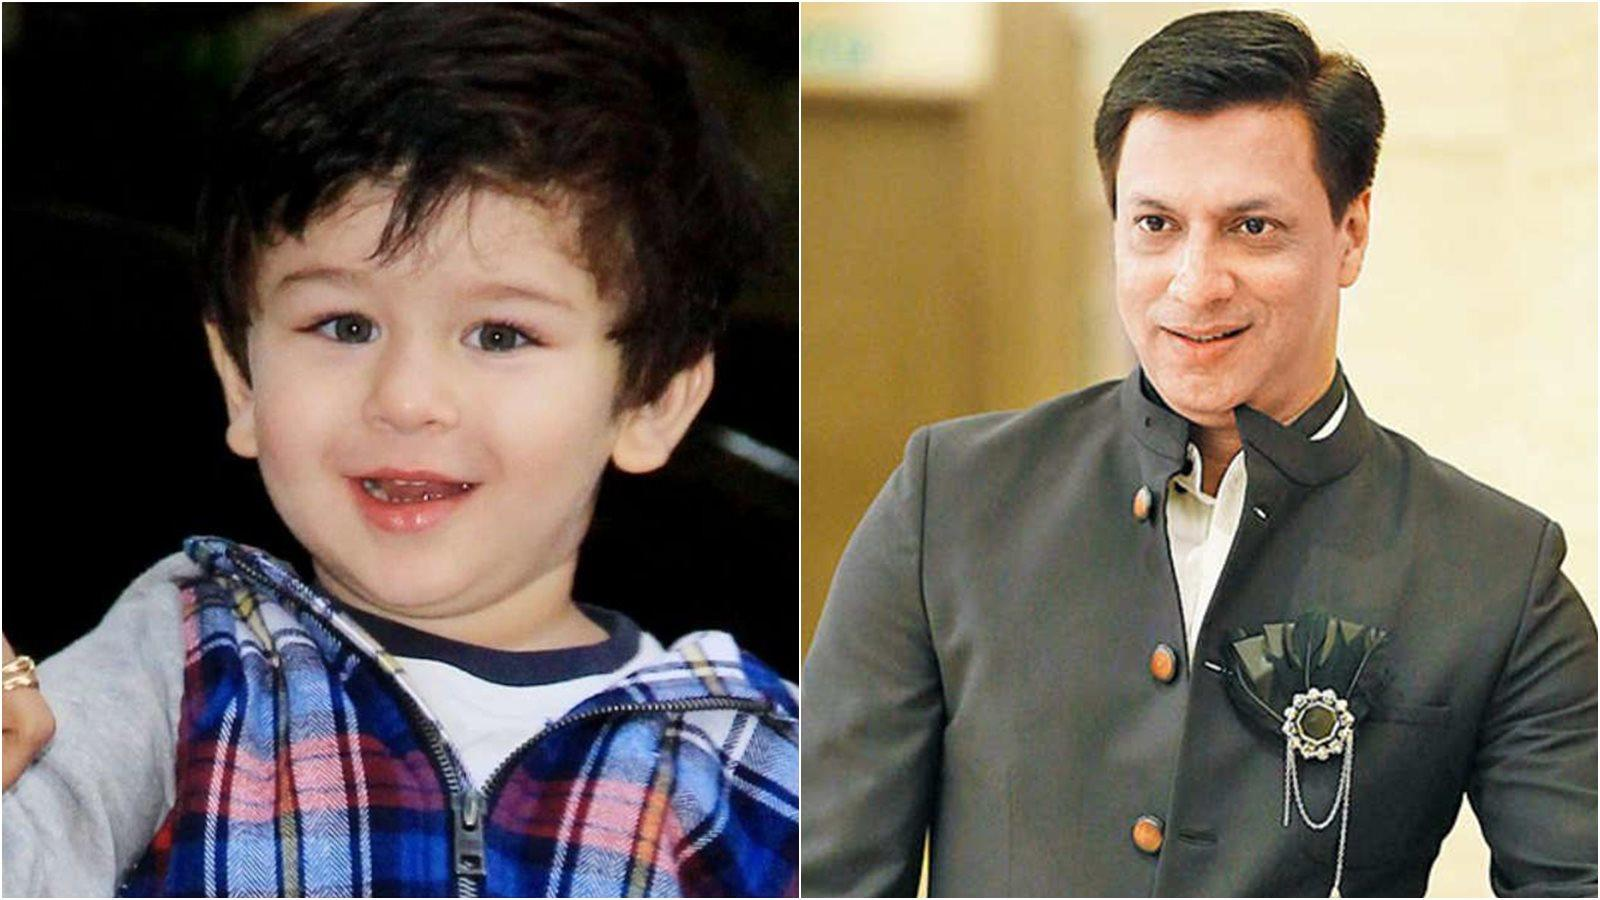 Madhur Bhandarkar to make a film on Taimur Ali Khan? Here's what the filmmaker has to say